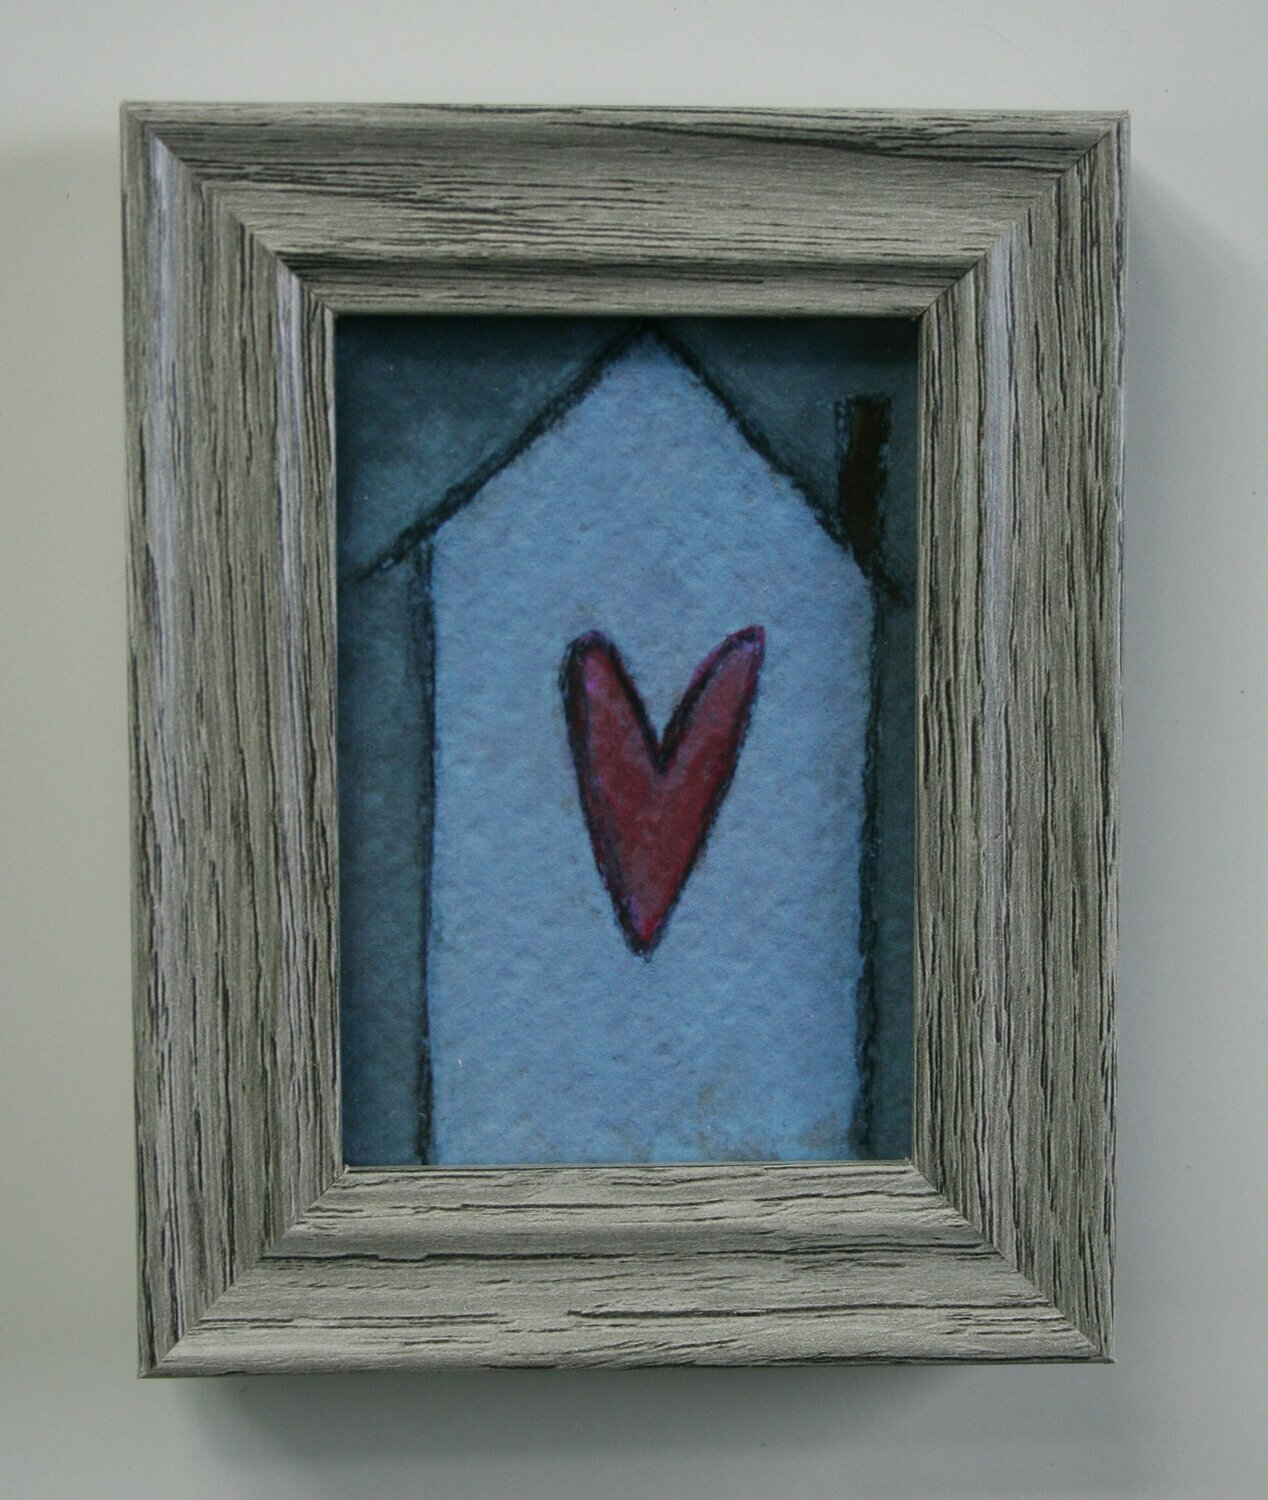 "home is where the heart is artwork 2.5x3.5"" a2n2koon giclee print framed in gray wood stand-up frame miniature home art comes in gift box"